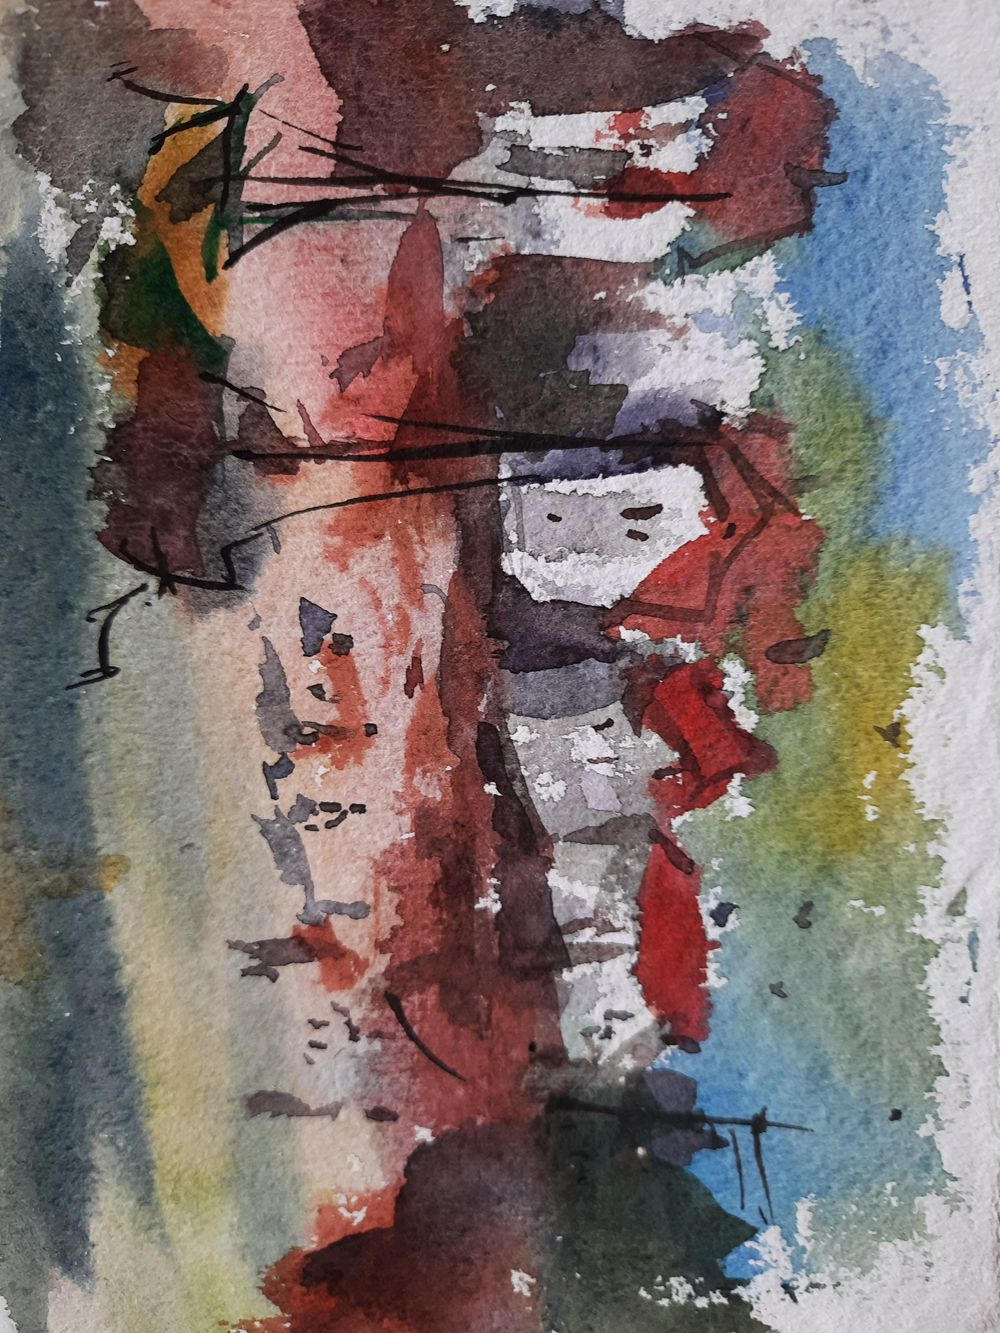 Watercolor workout - image 5 - student project